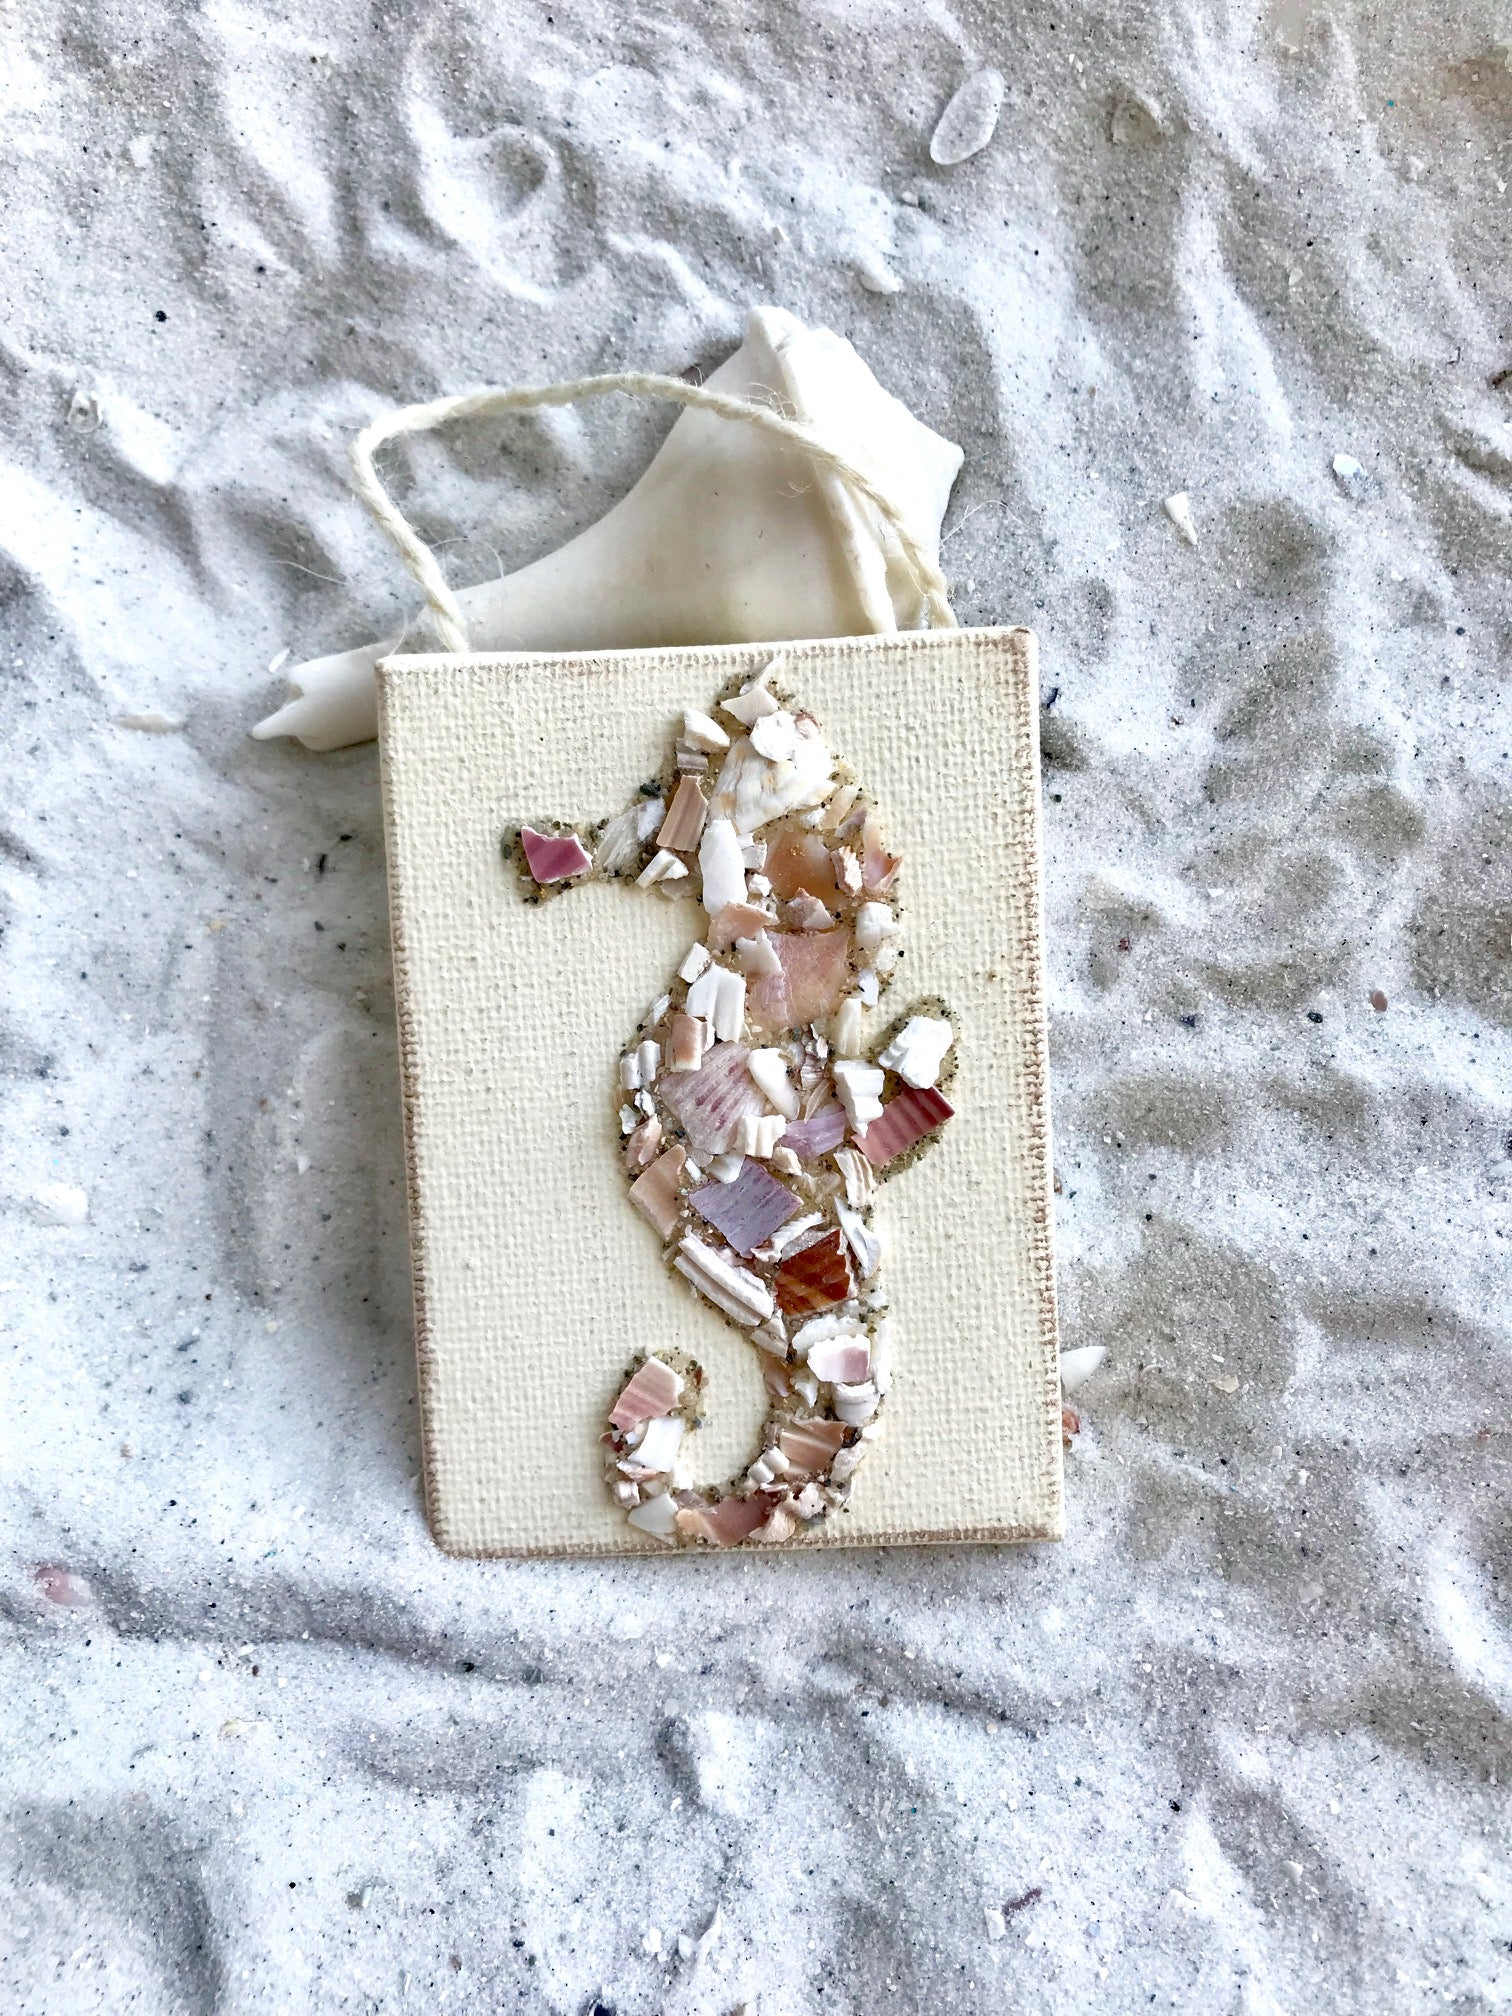 Seahorse Ornament Made of Crushed Shells